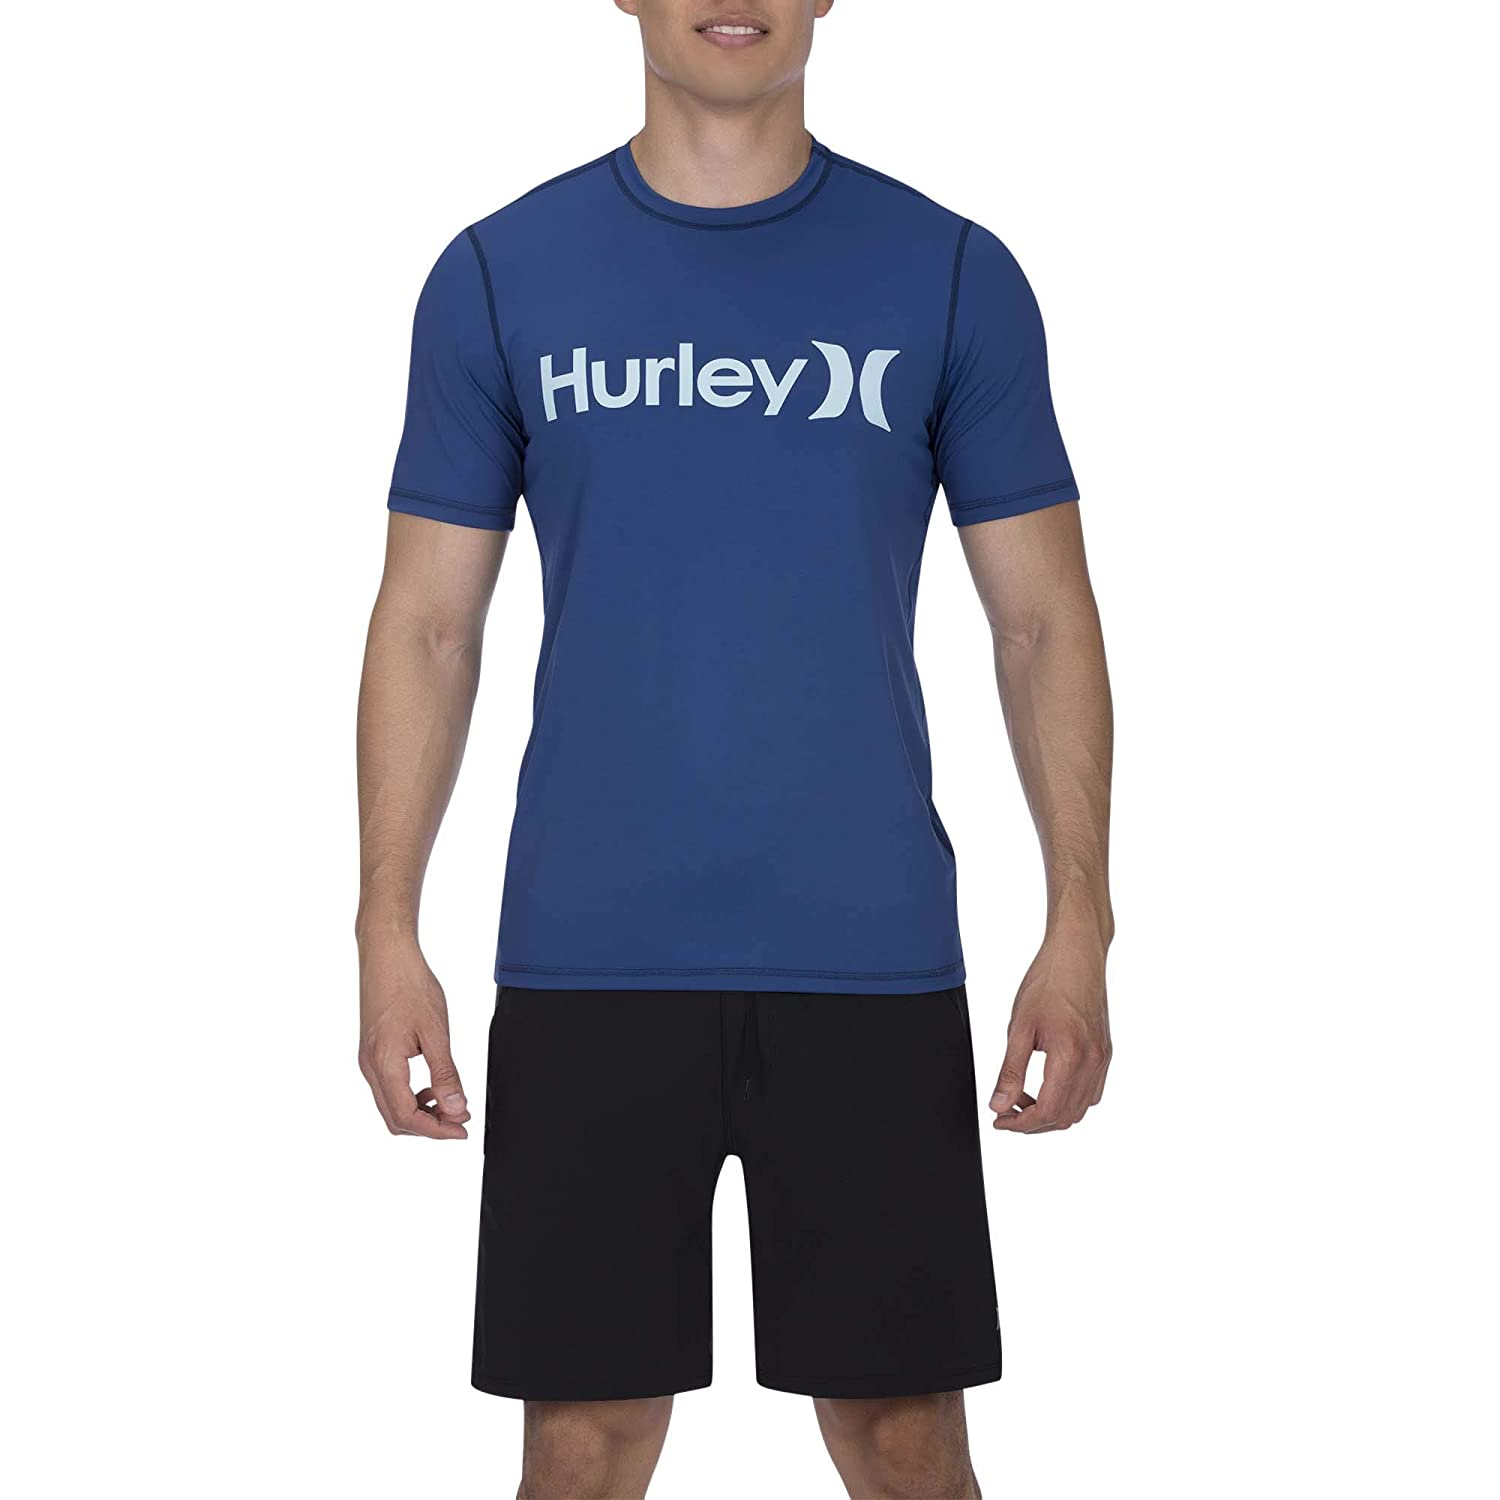 Hombre Hurley M One/&Only Surf Shirt S//S Lycras Blue Force M